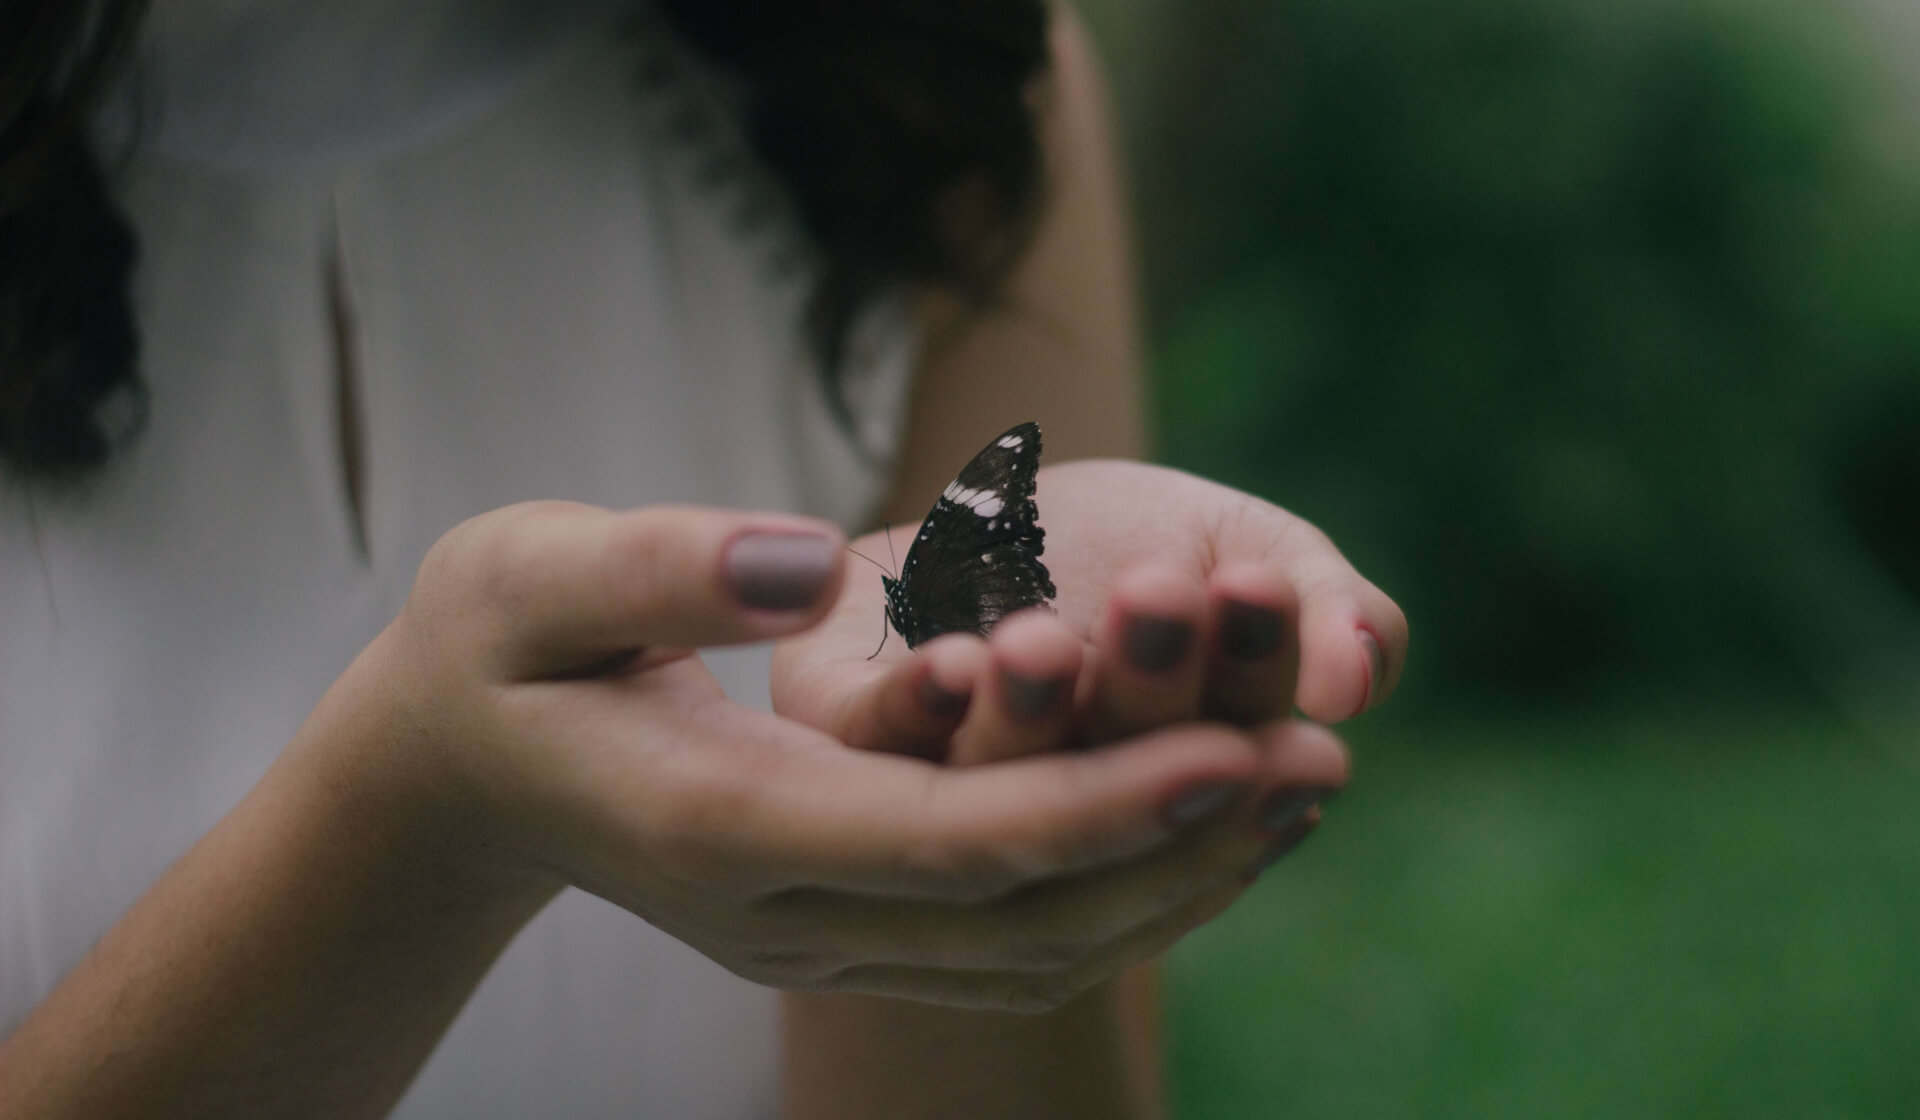 Close-up of a woman's hands holding a black and white butterfly